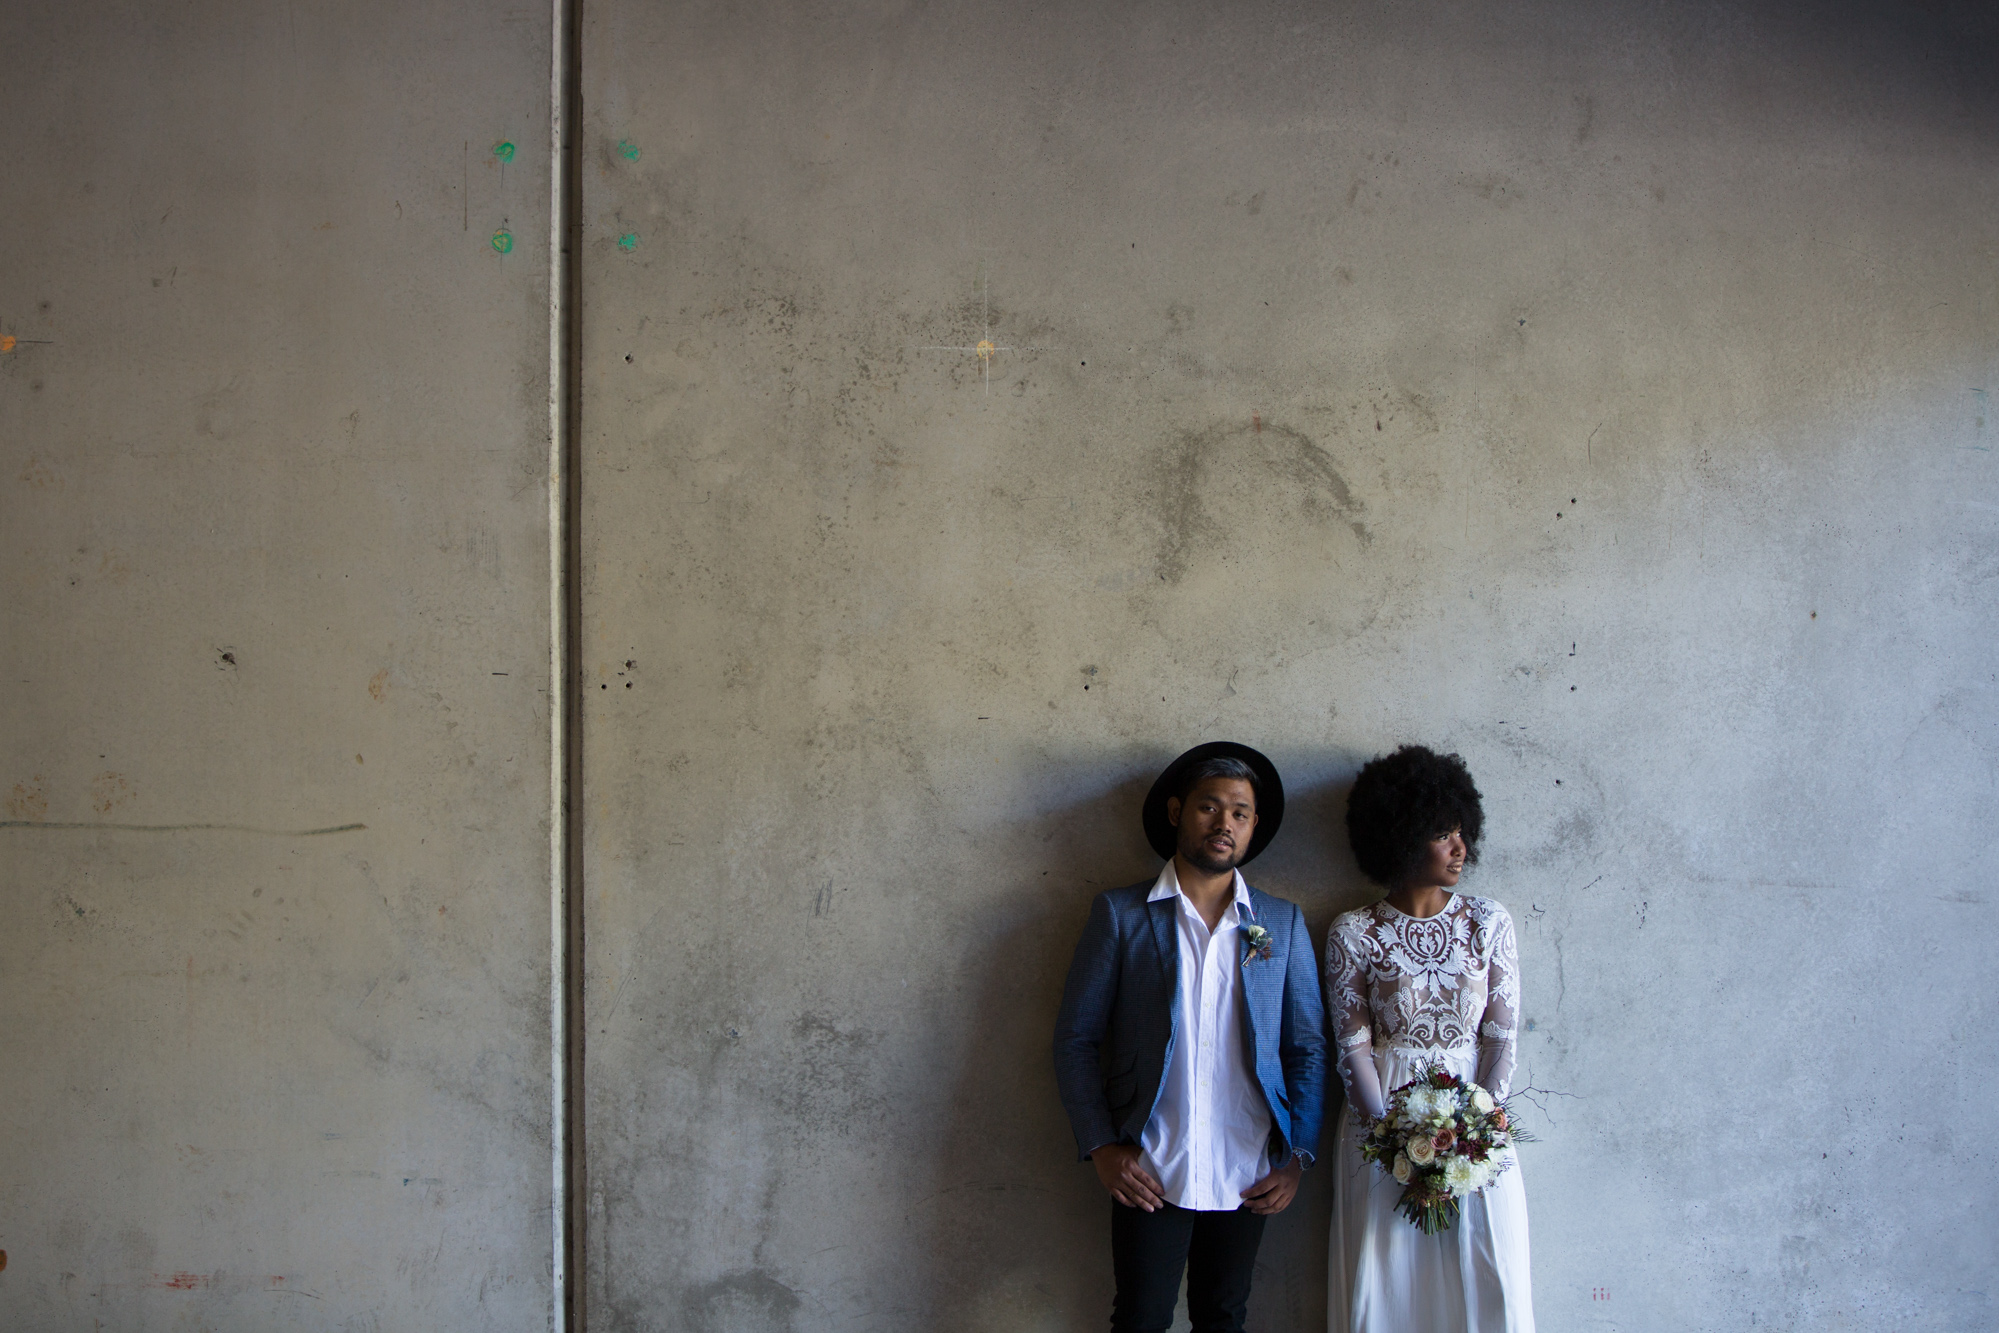 Cool bride and groom standing against brick wall. Groom wearing blue jacket and hat looking at the camera, bride wearing lace long sleeved wedding dress looking away